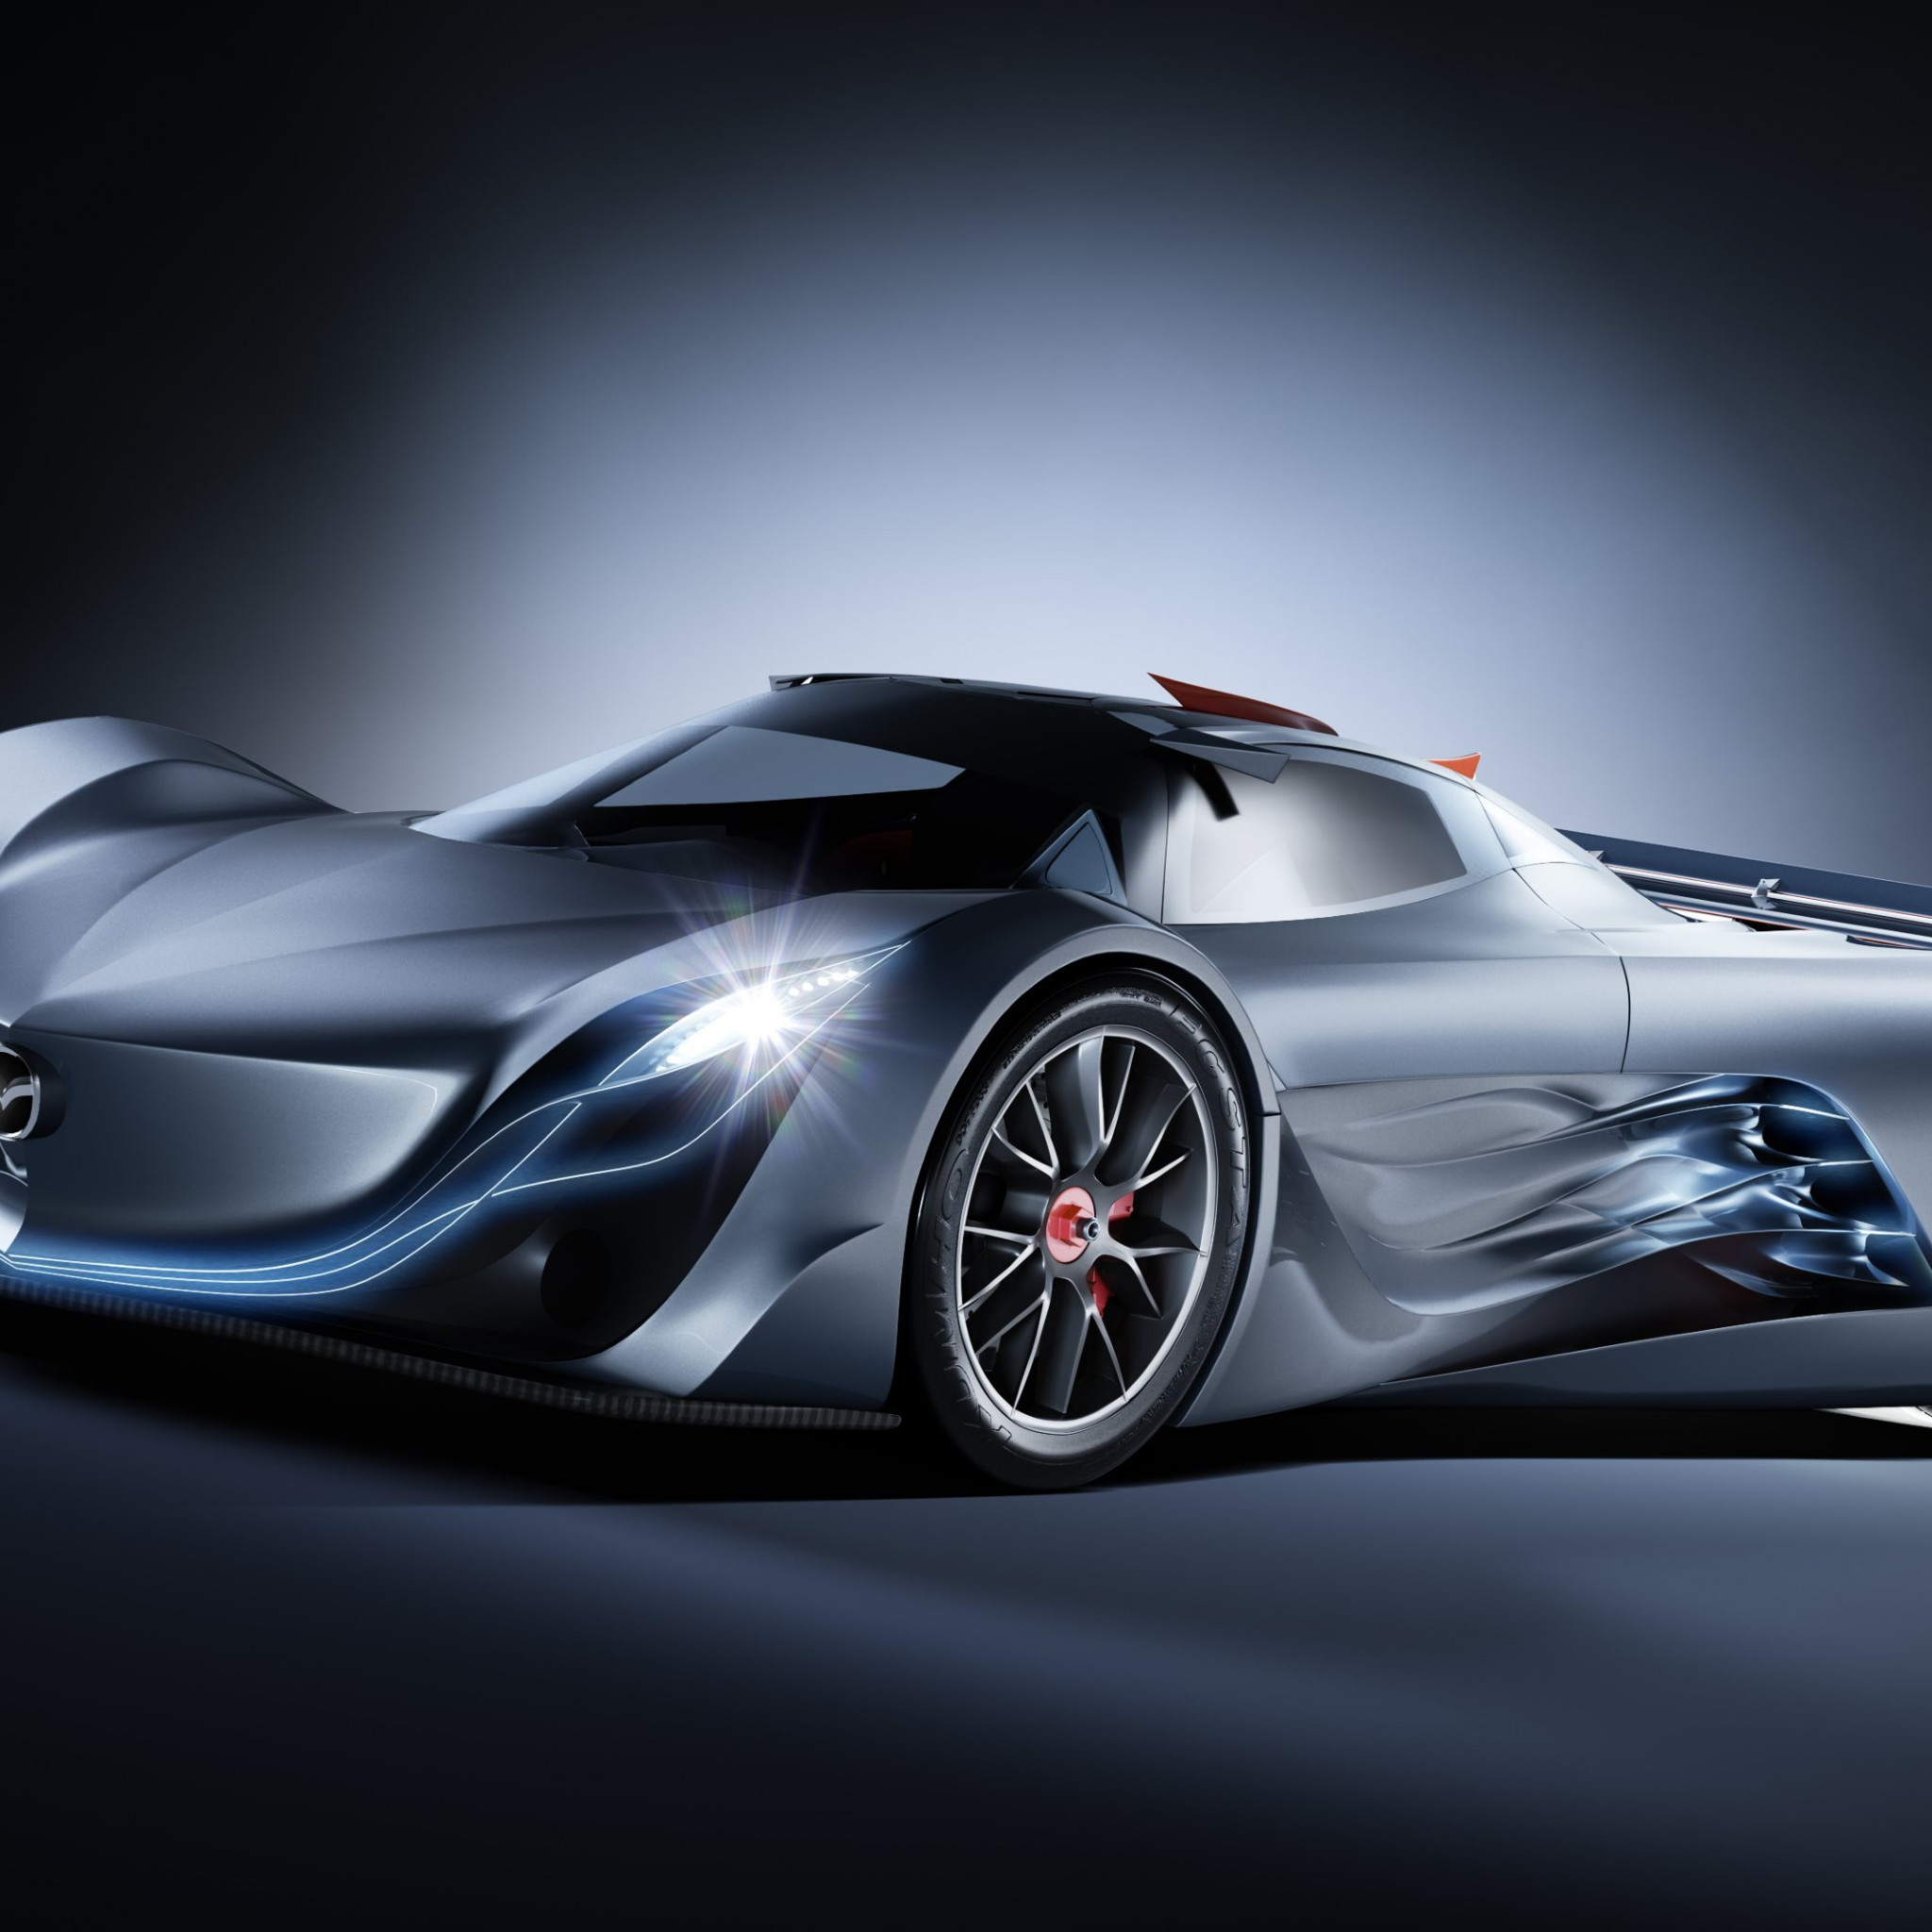 Mazda Furai wallpaper 2048x2048